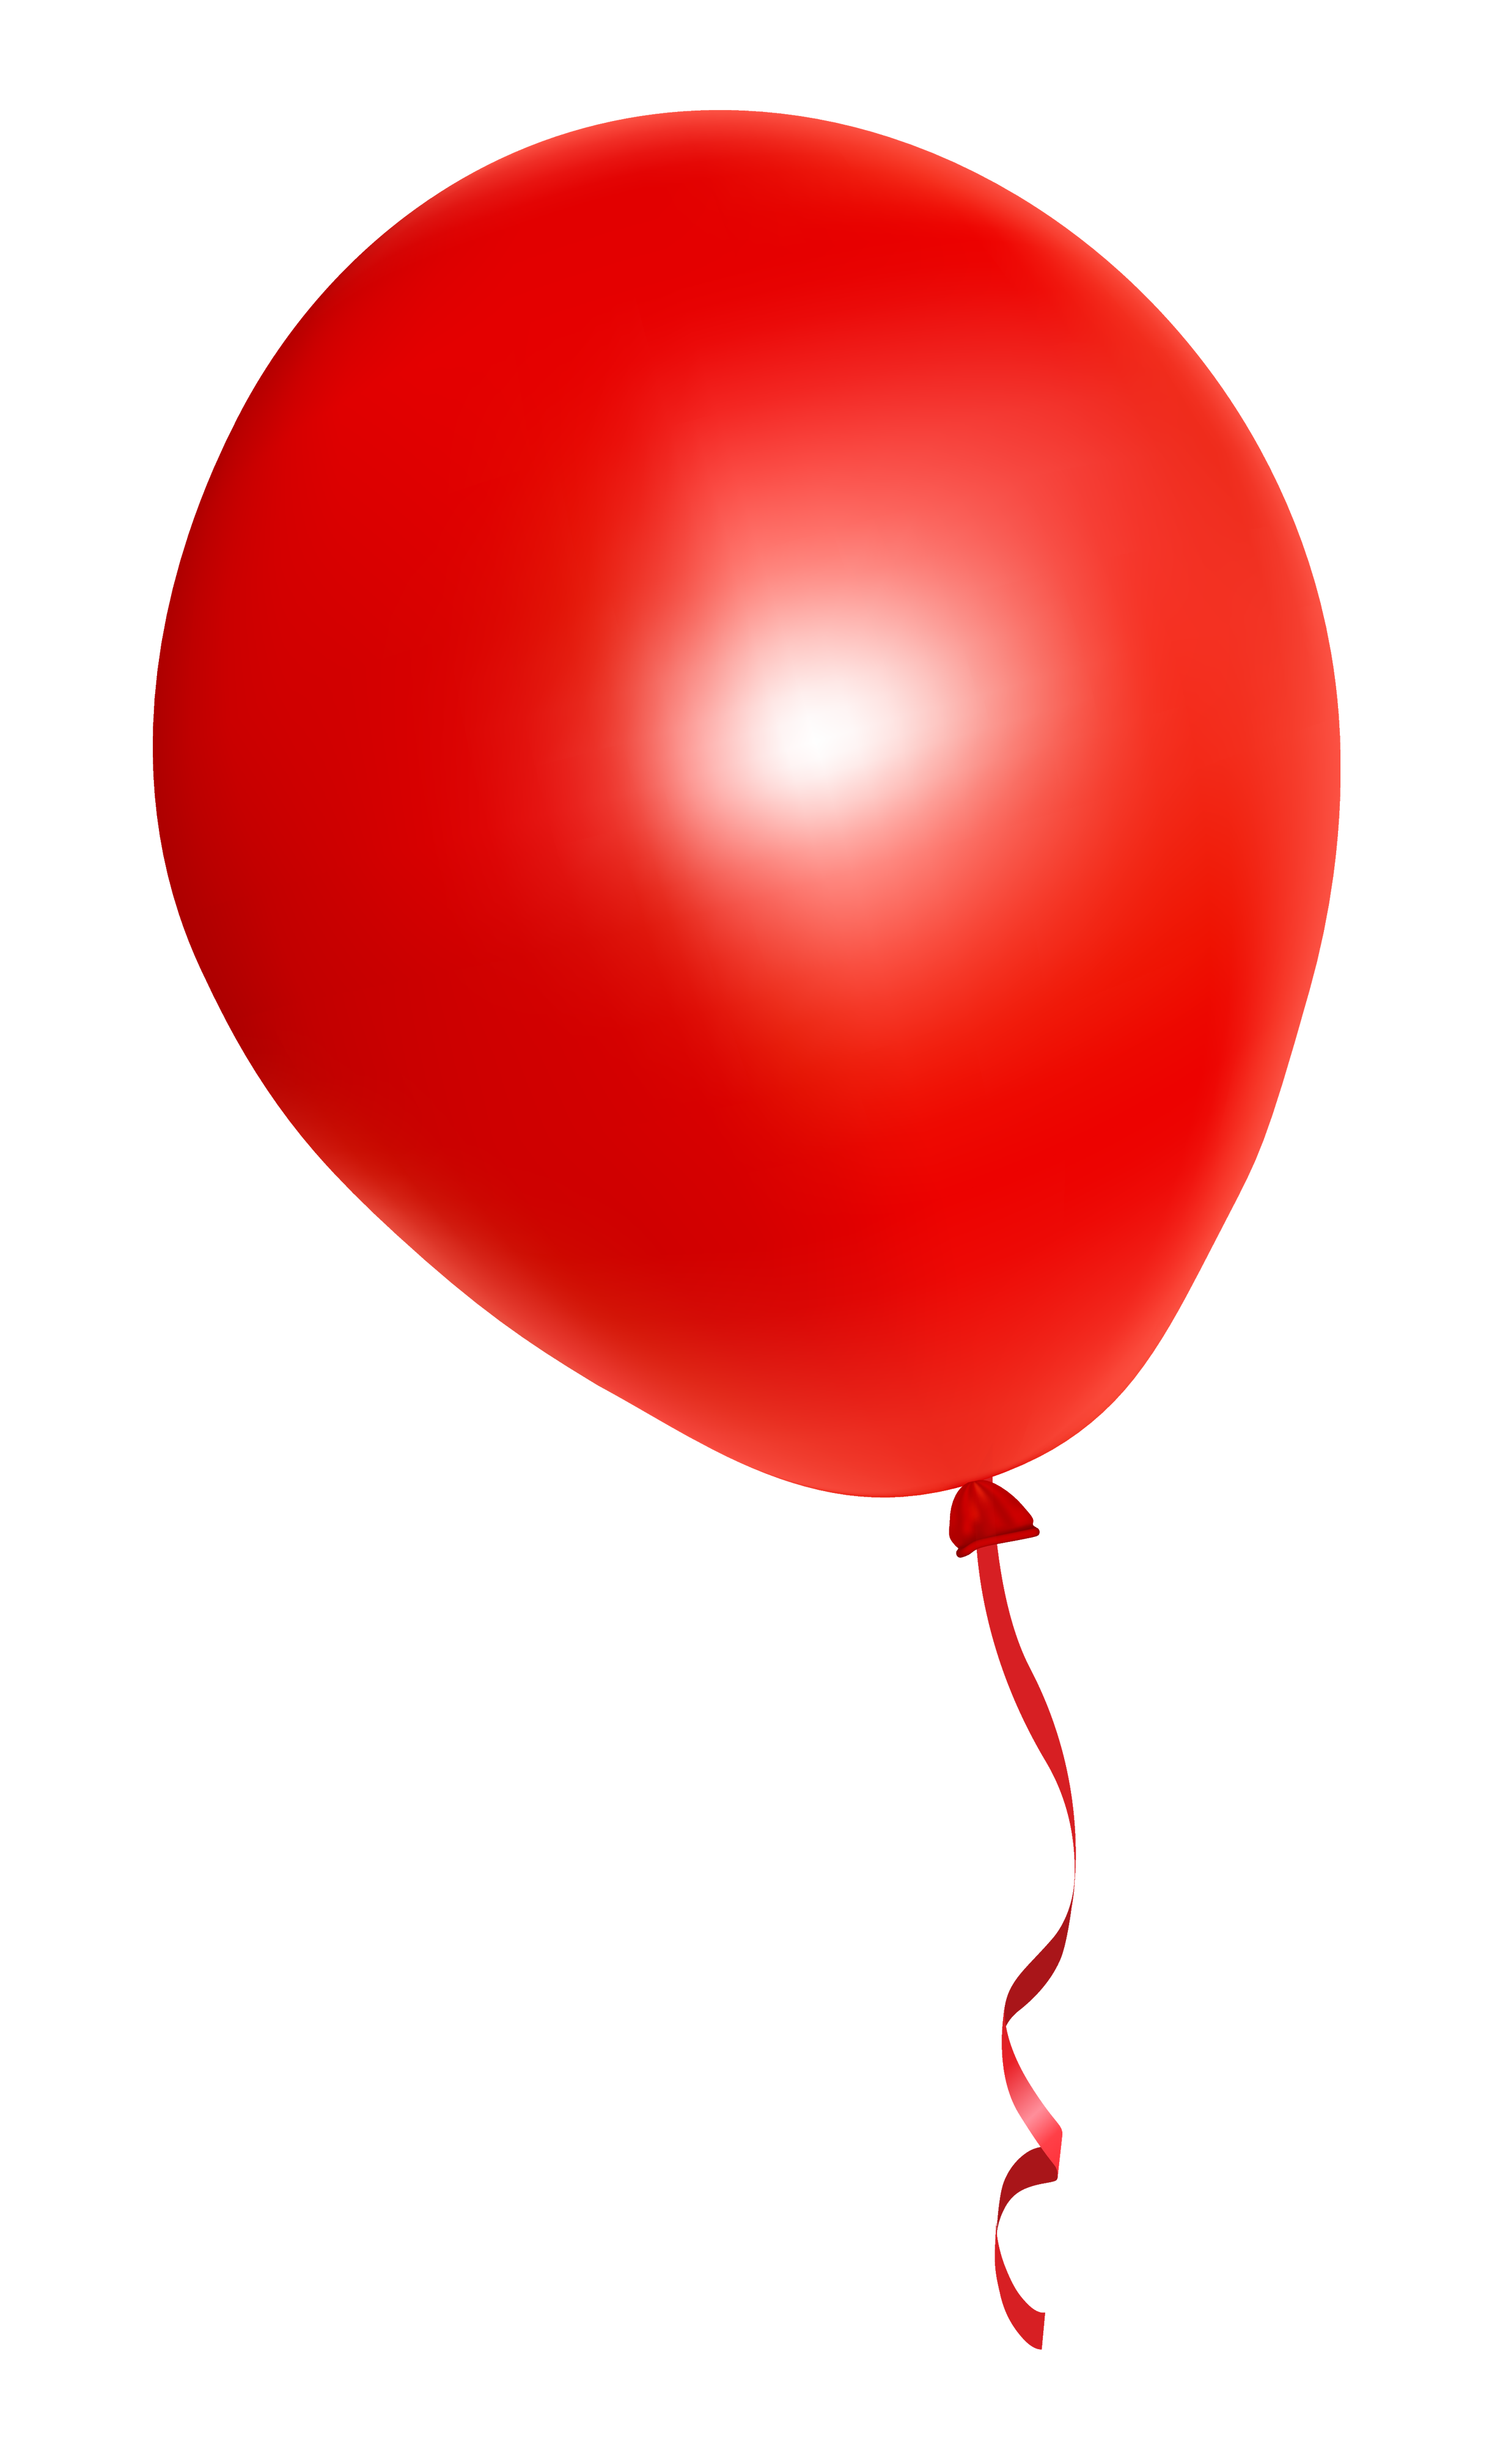 image result for red balloon transparent psycho cinema clown clip art with balloons clown clip art black white free